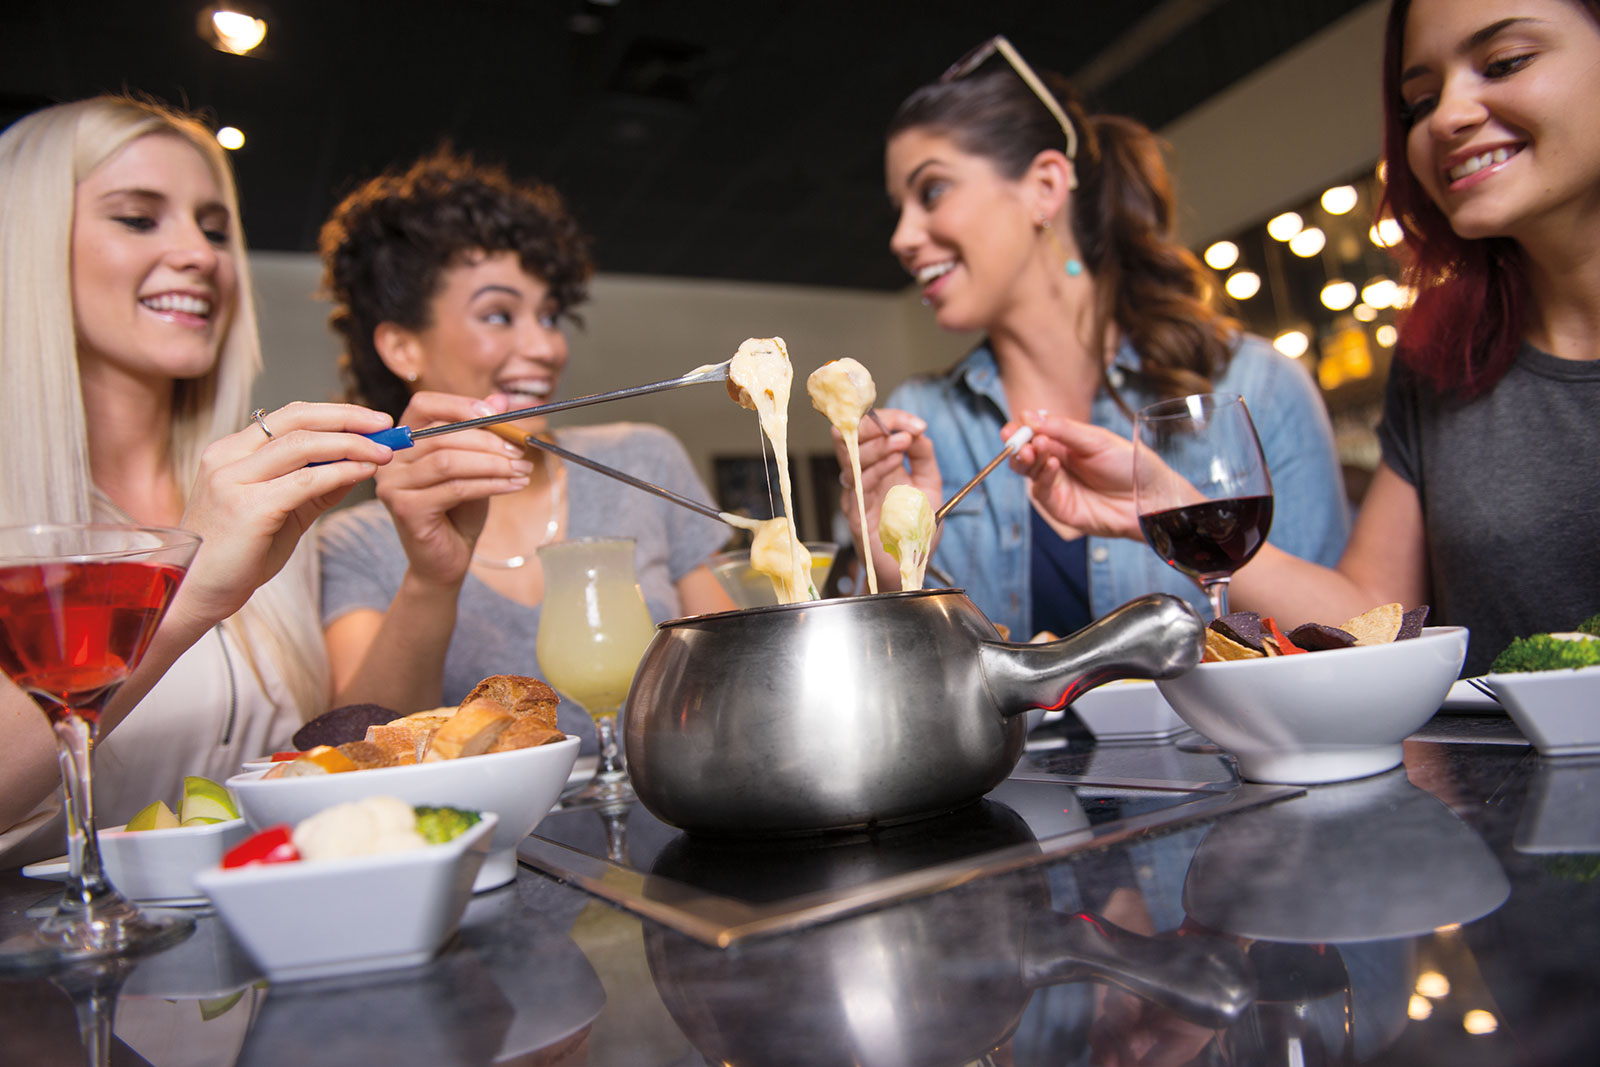 Three Women Having Fun at the Melting Pot Fondue Restaurant